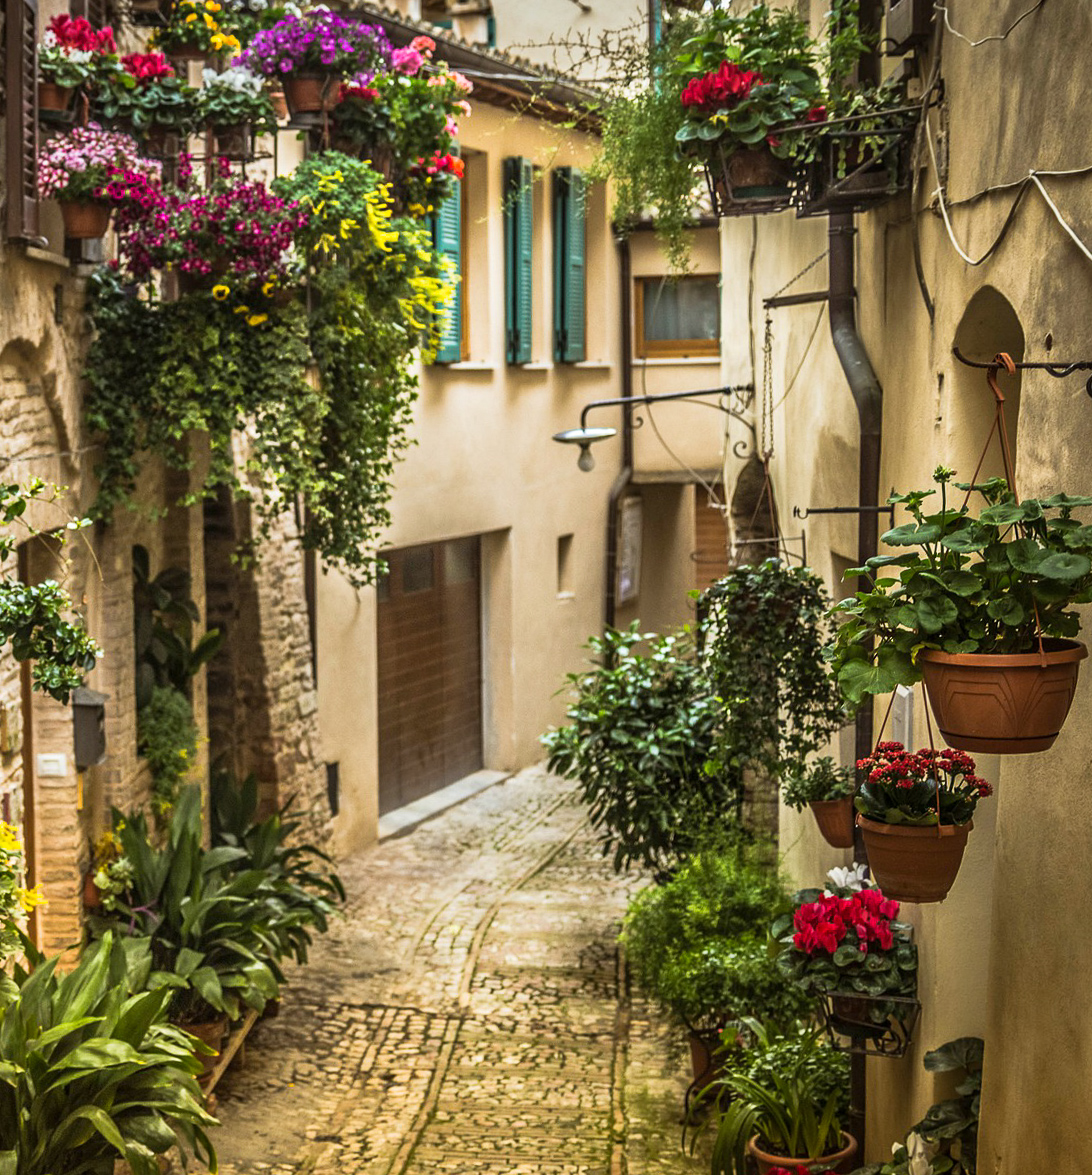 A street full of flowers in Spello, a charming town in the region of Umbria